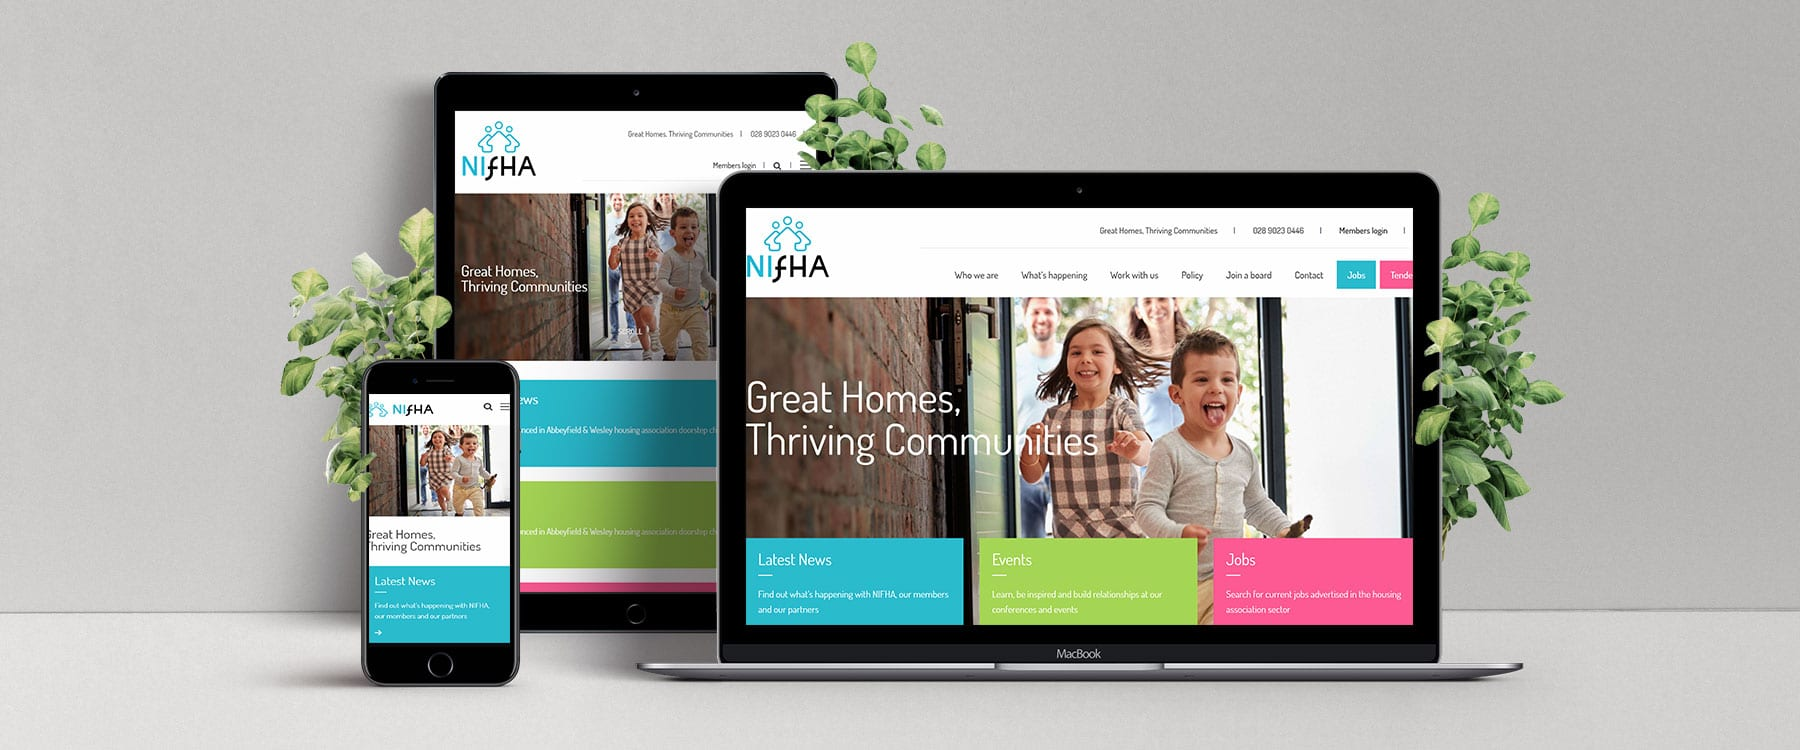 Sleek & Engaging New Website for NIFHA Image